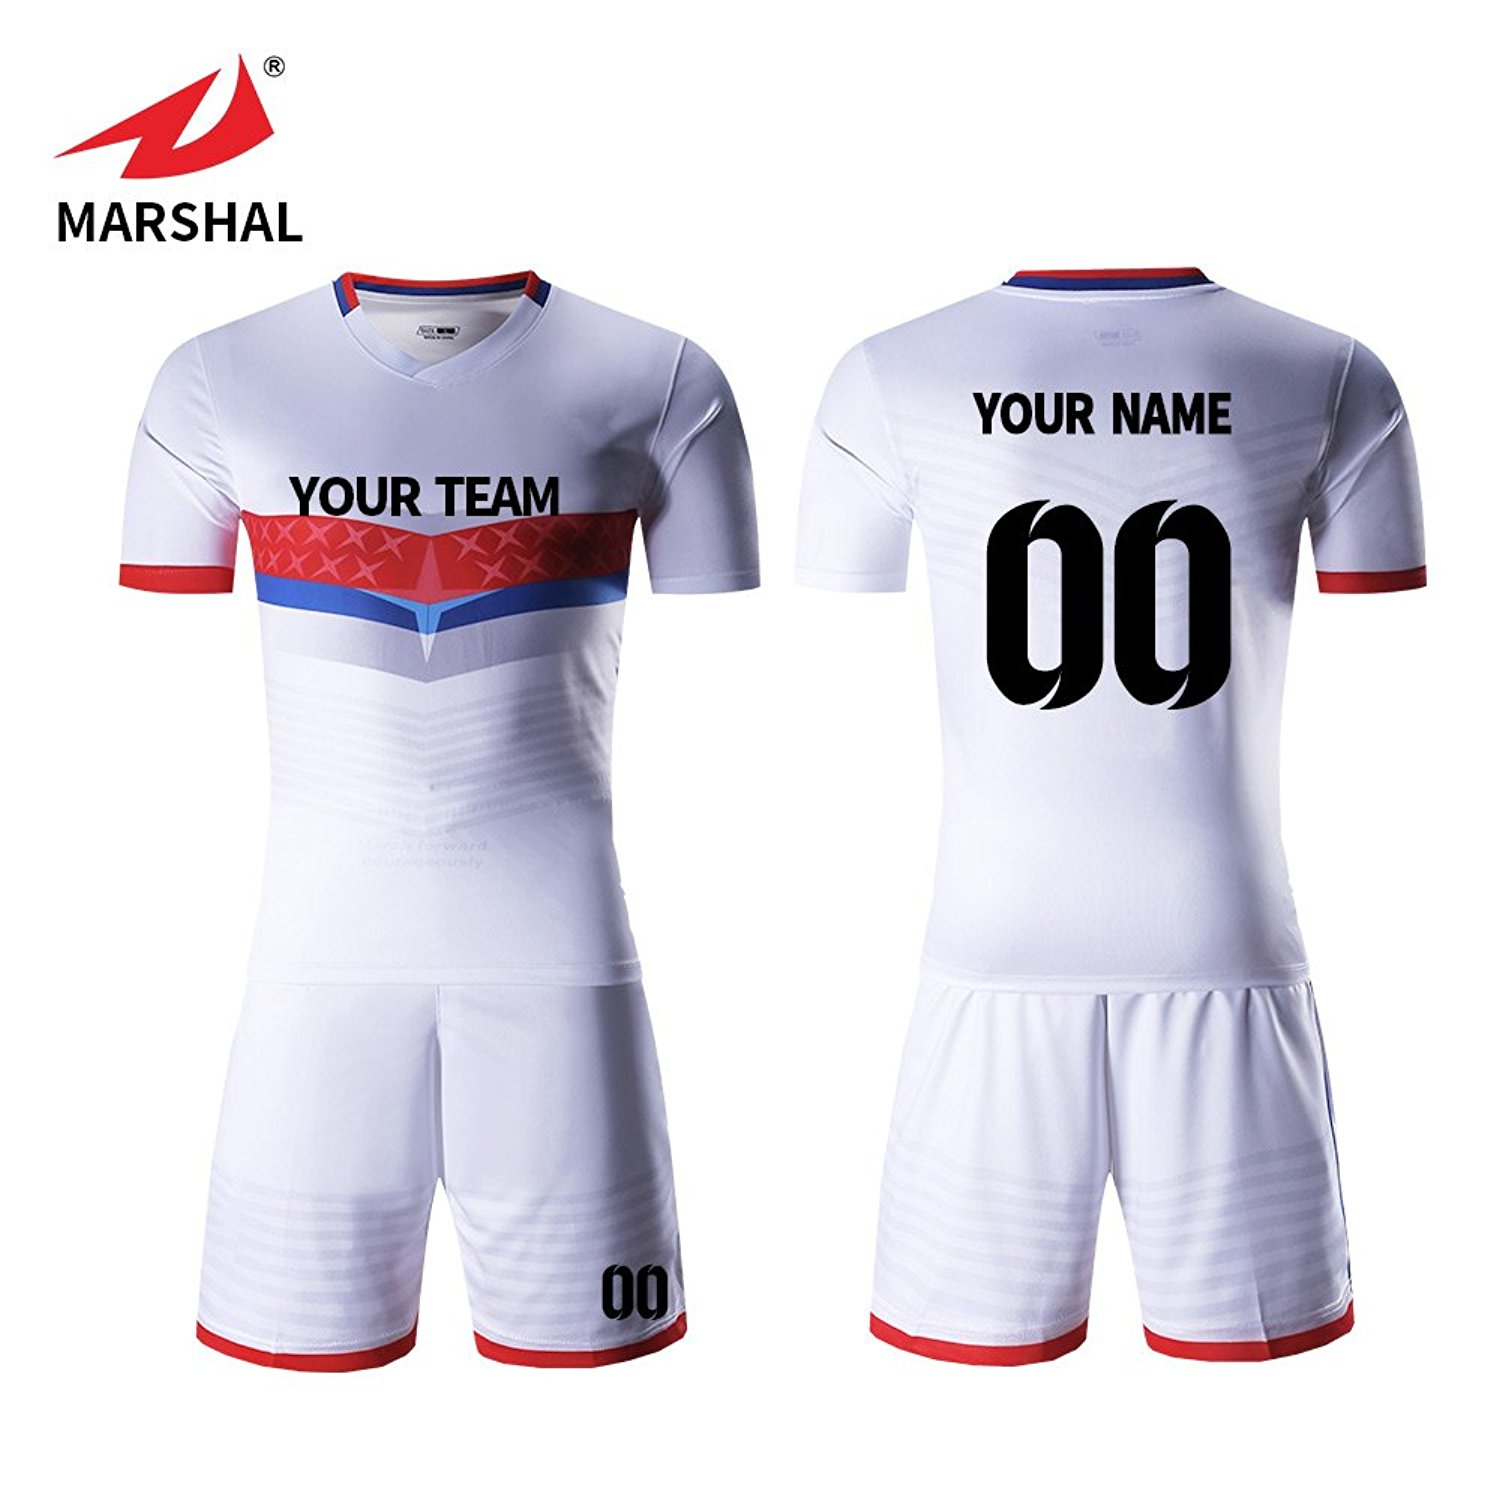 cf70c3dc3a2 Get Quotations · Marshal Jersey Custom Soccer Jersey Sets White Sportwear  Men s Uniform Custom Your Name